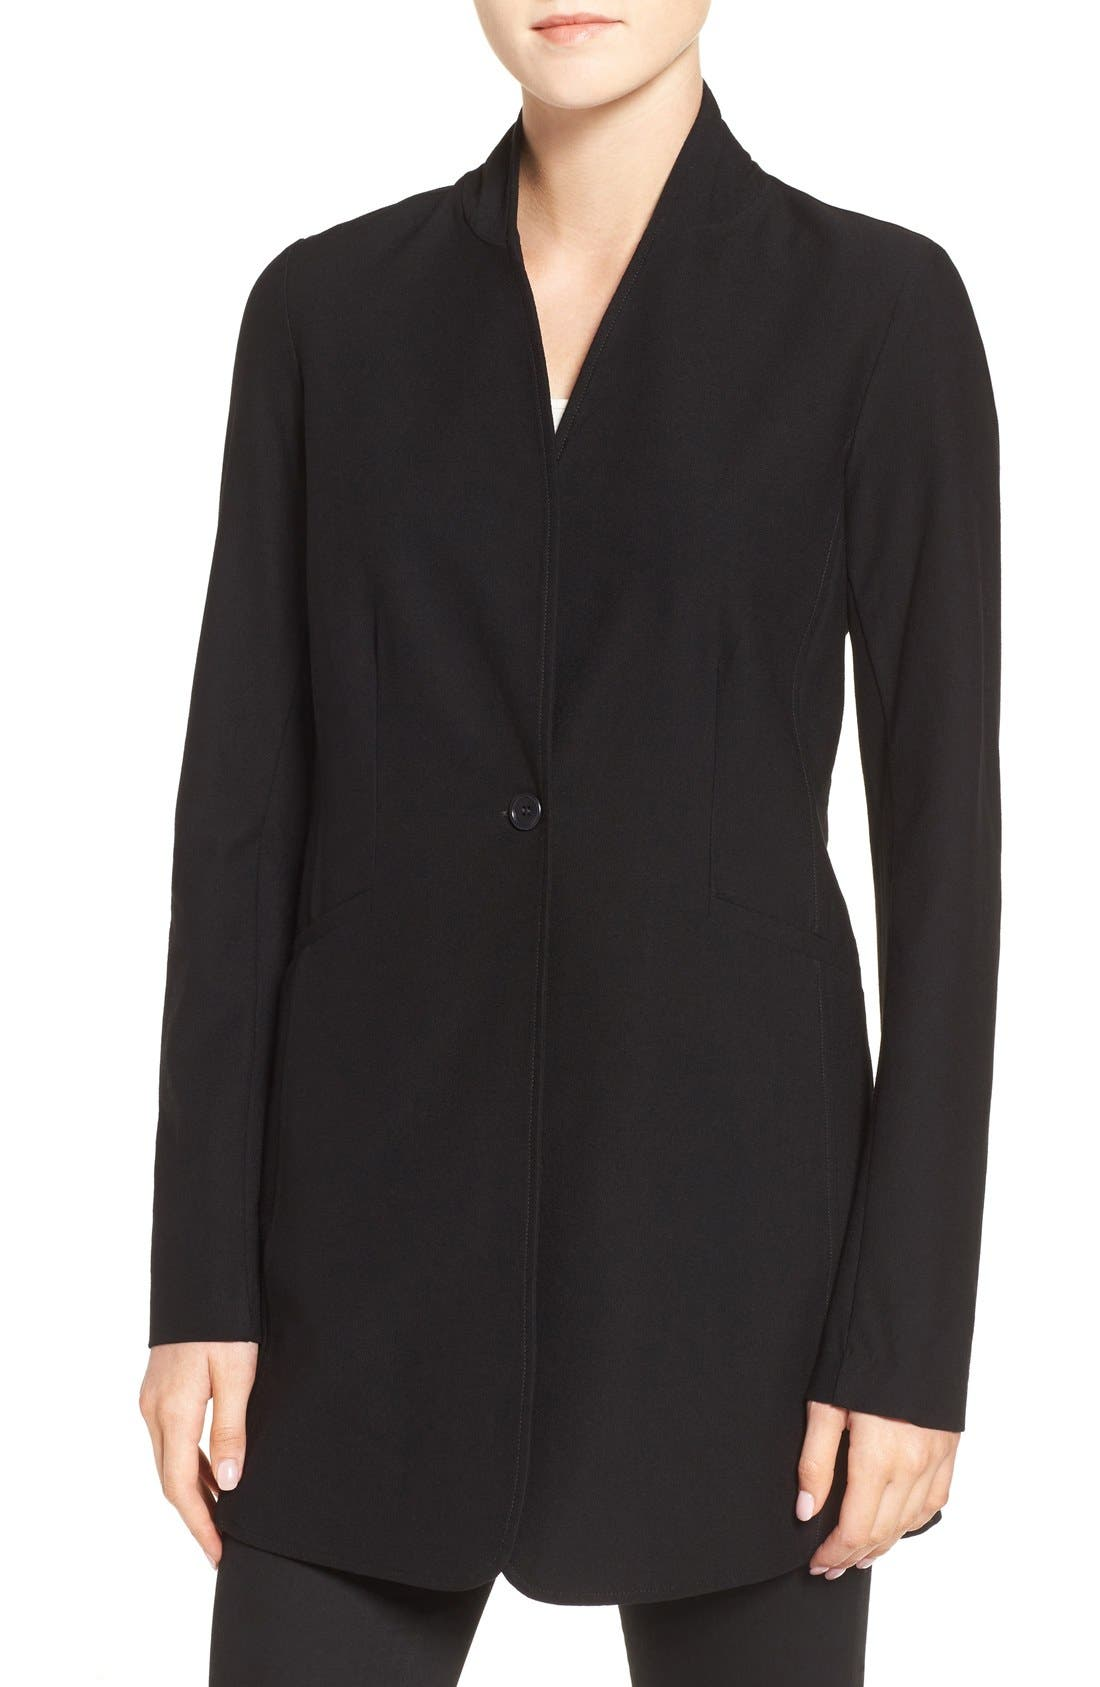 Washable Stretch Crepe Stand Collar Jacket,                             Main thumbnail 1, color,                             Black